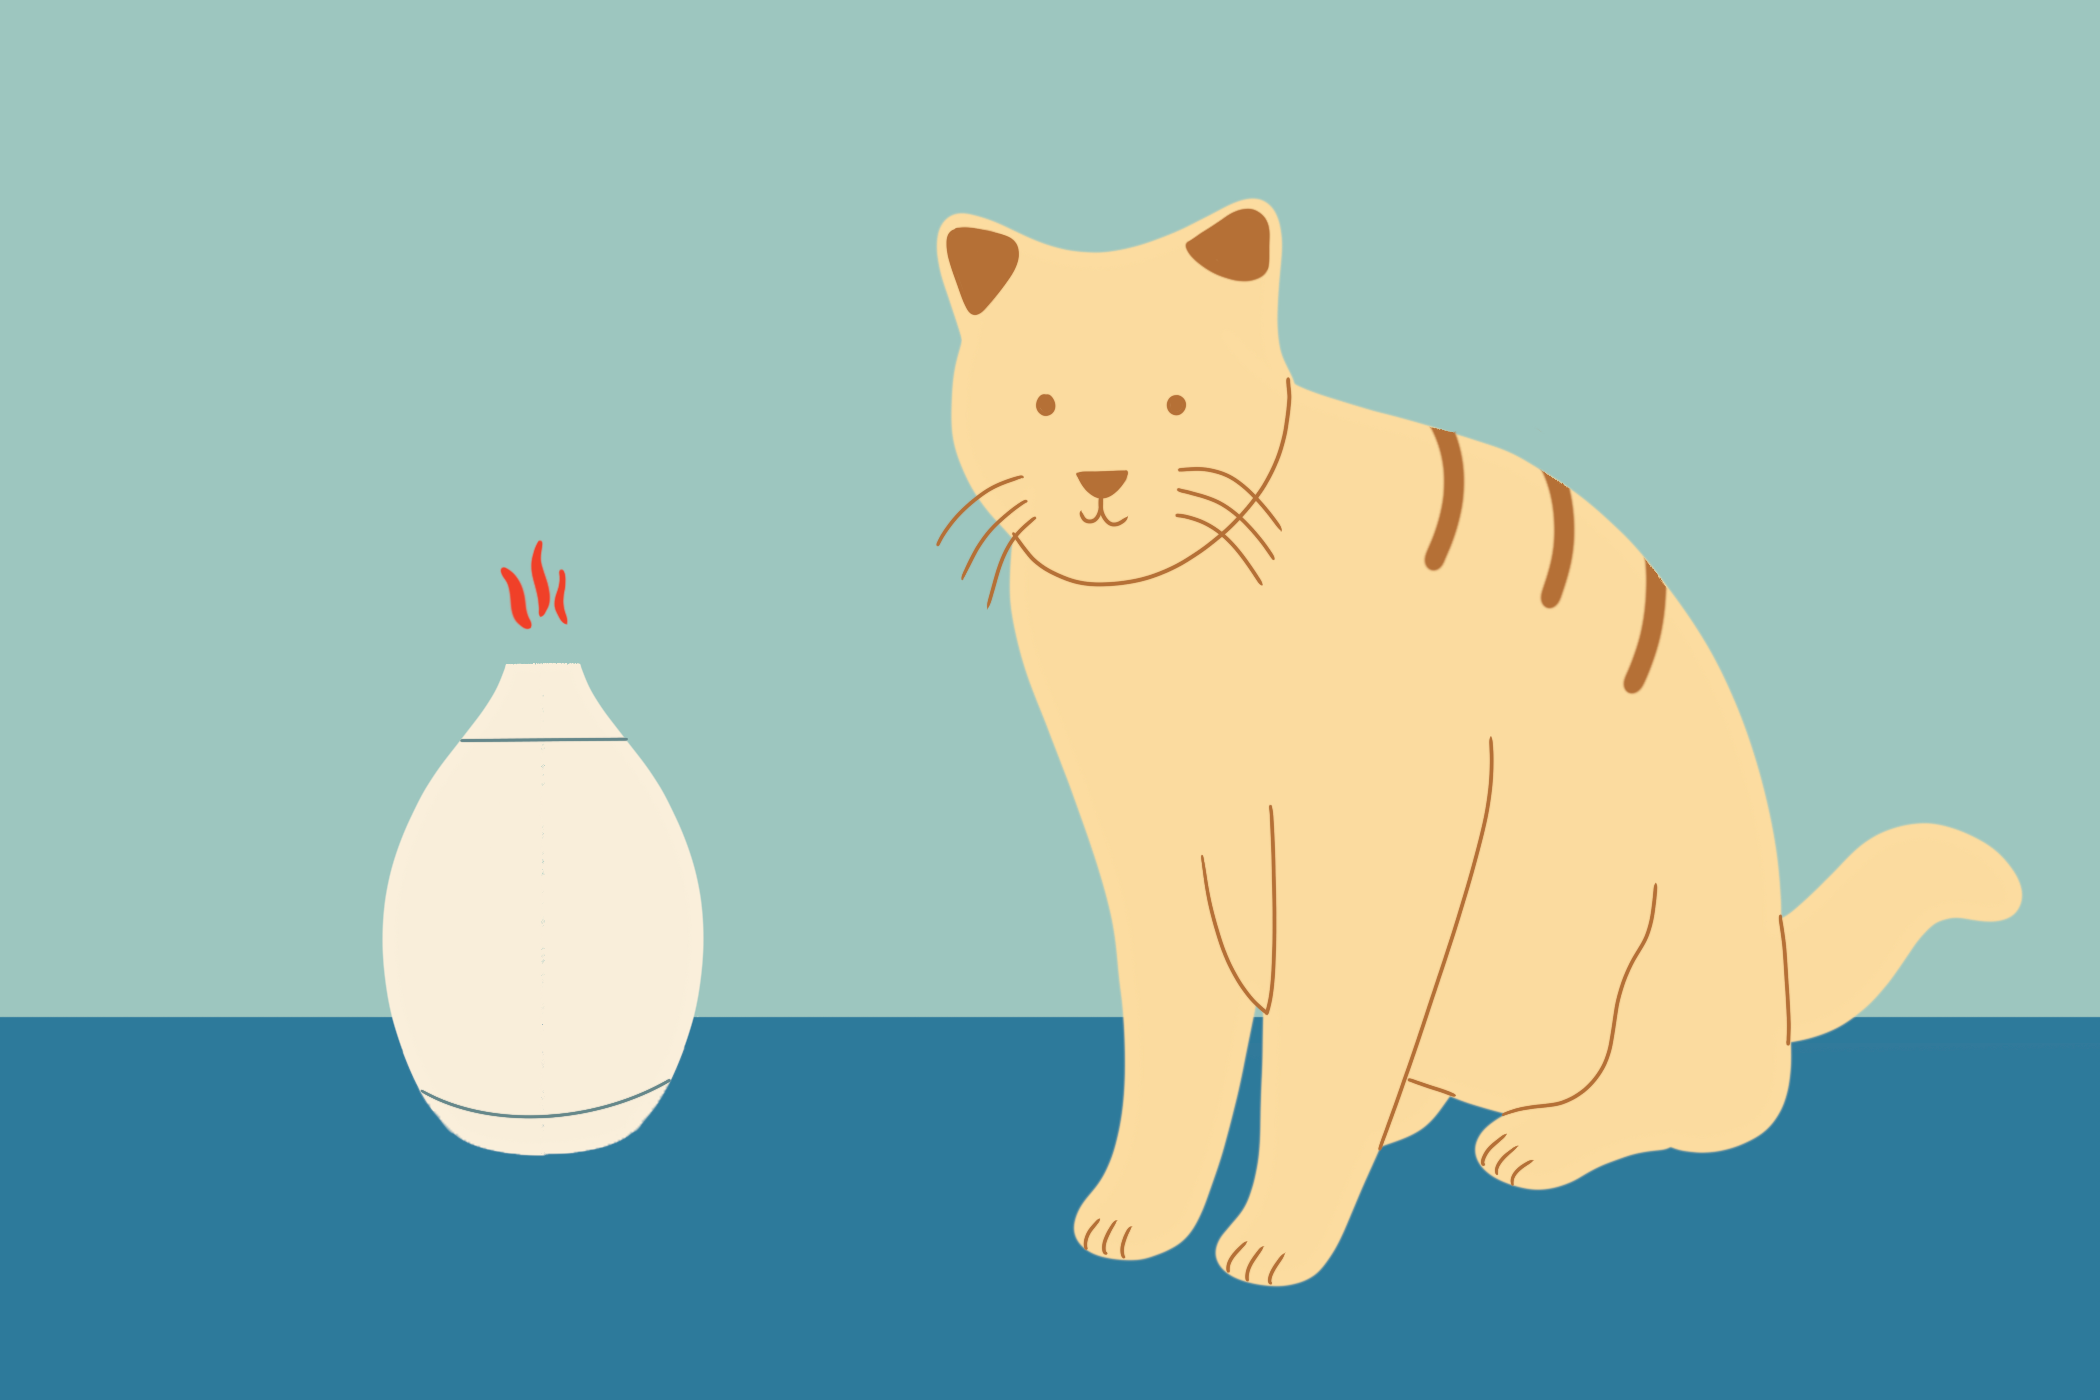 illustration of cat with oil diffuser